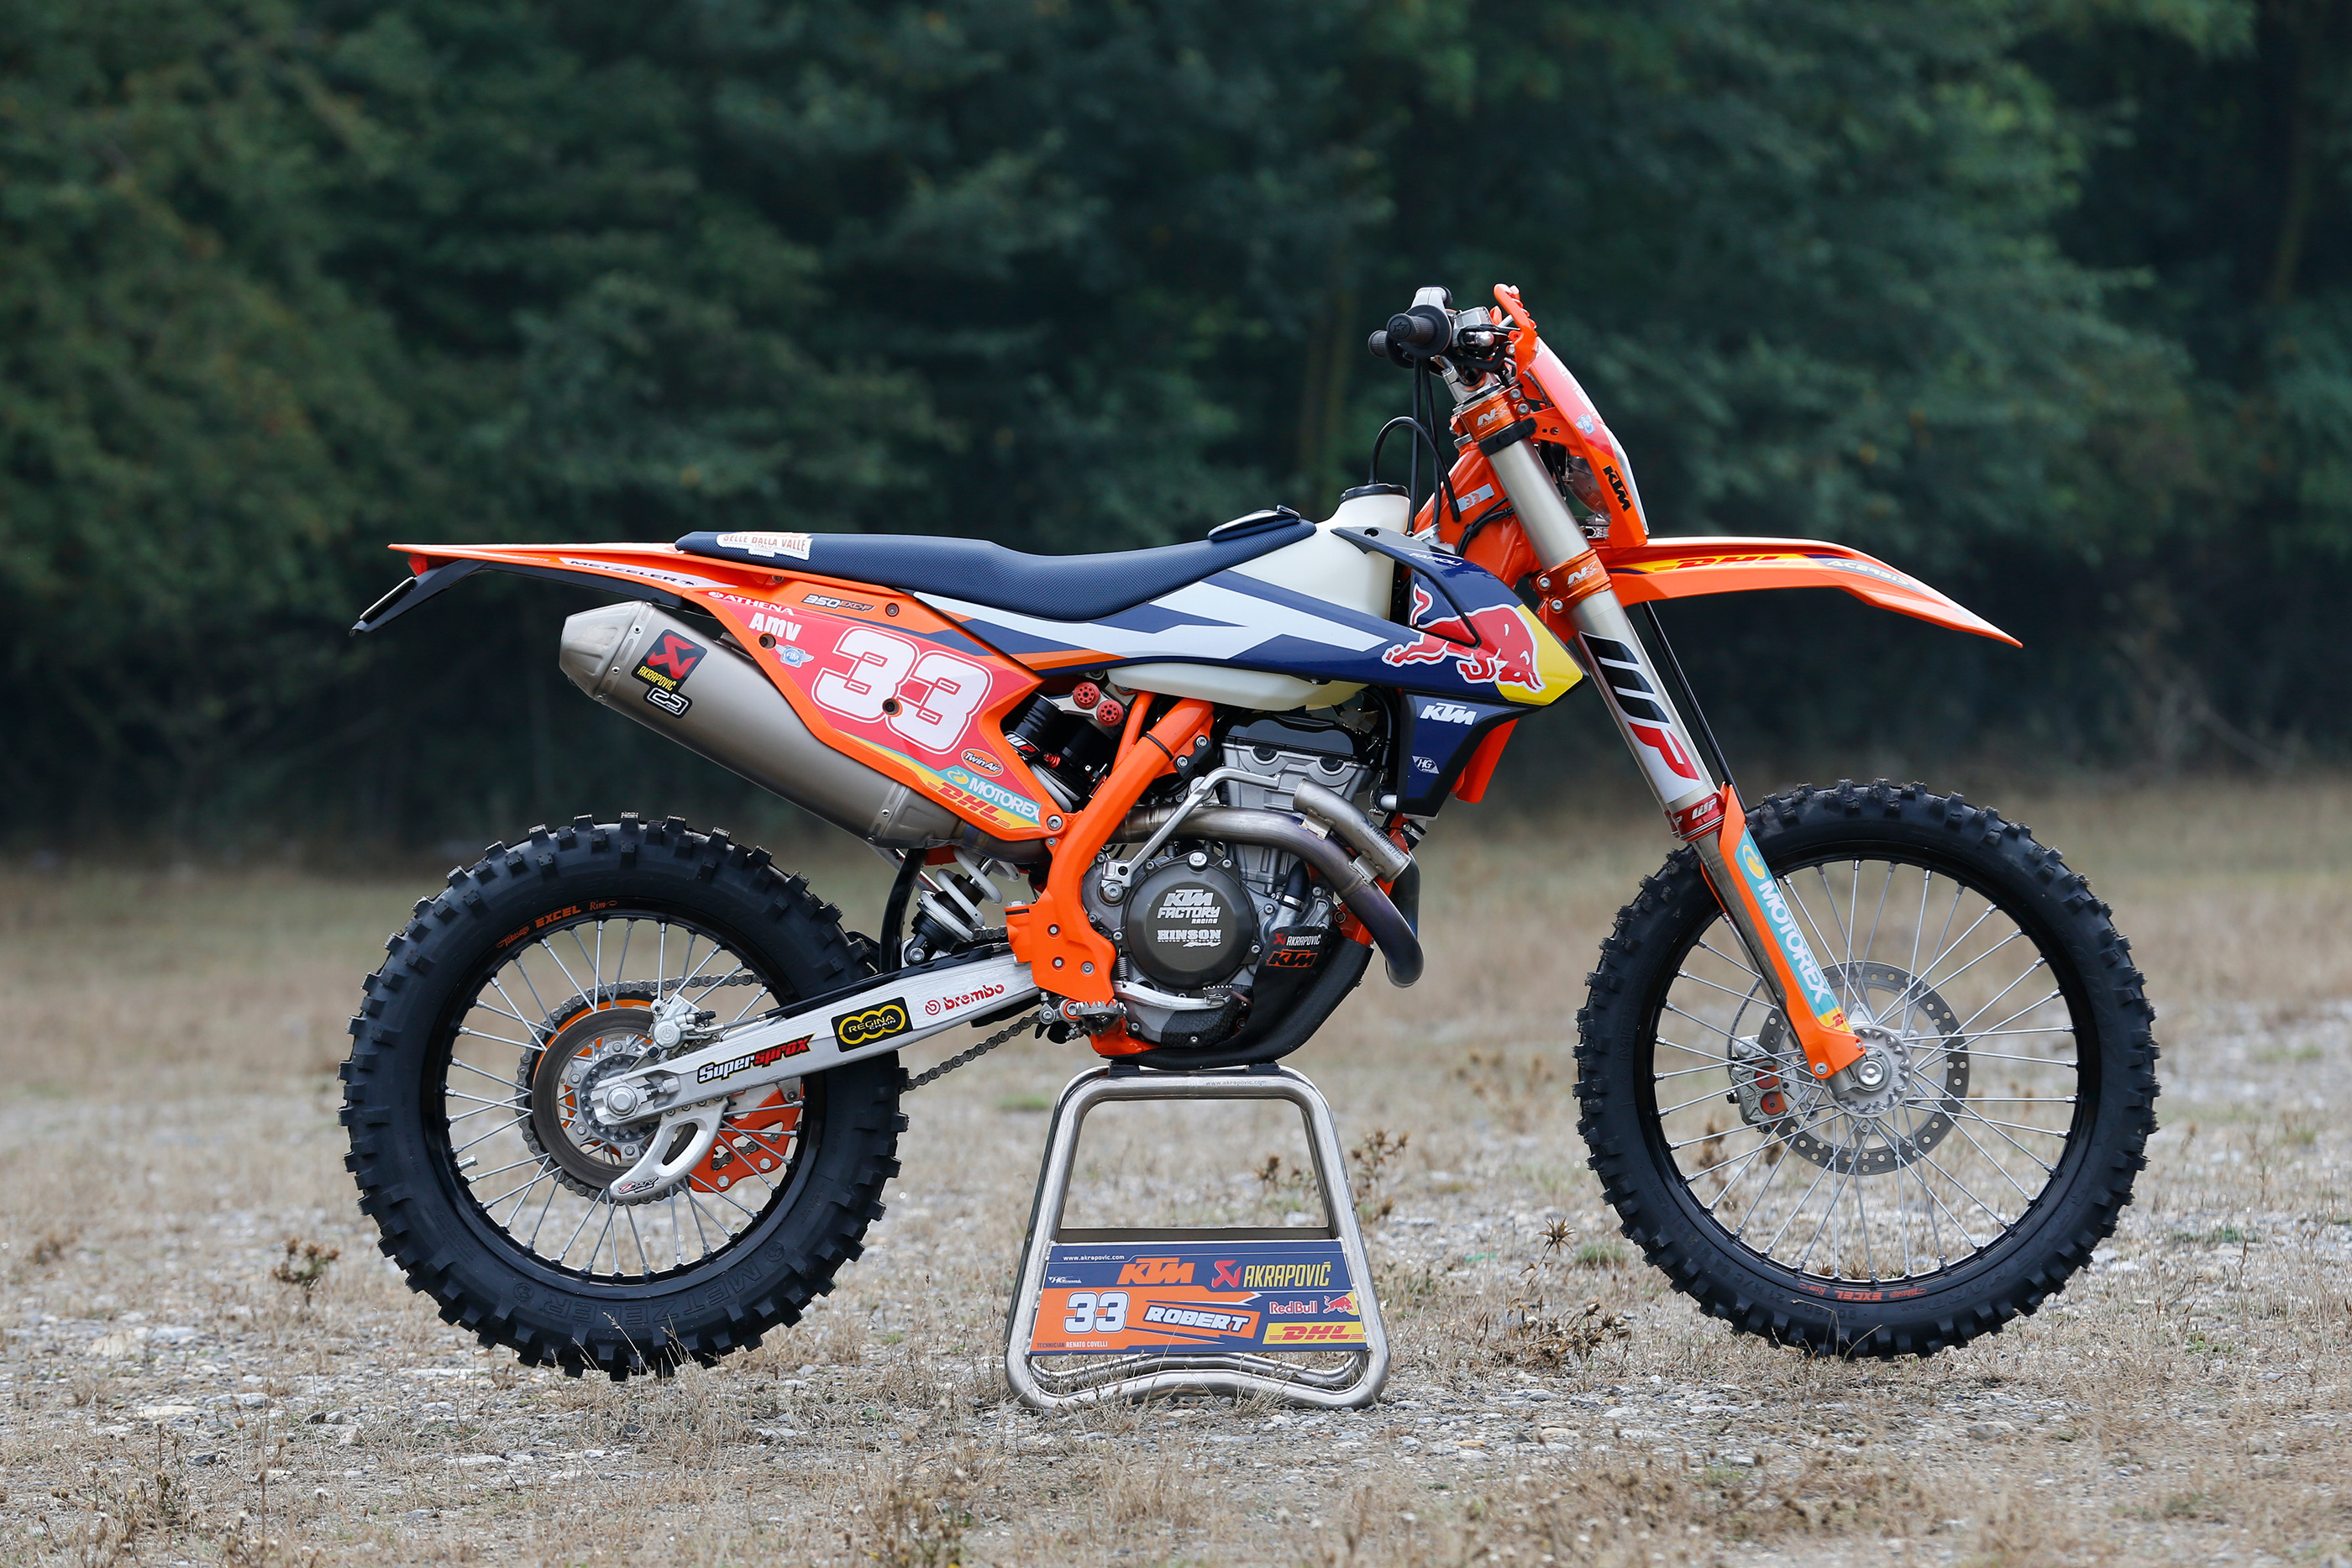 2017 Ktm Factory 350 Exc U2019s  U2013 De Ride Review